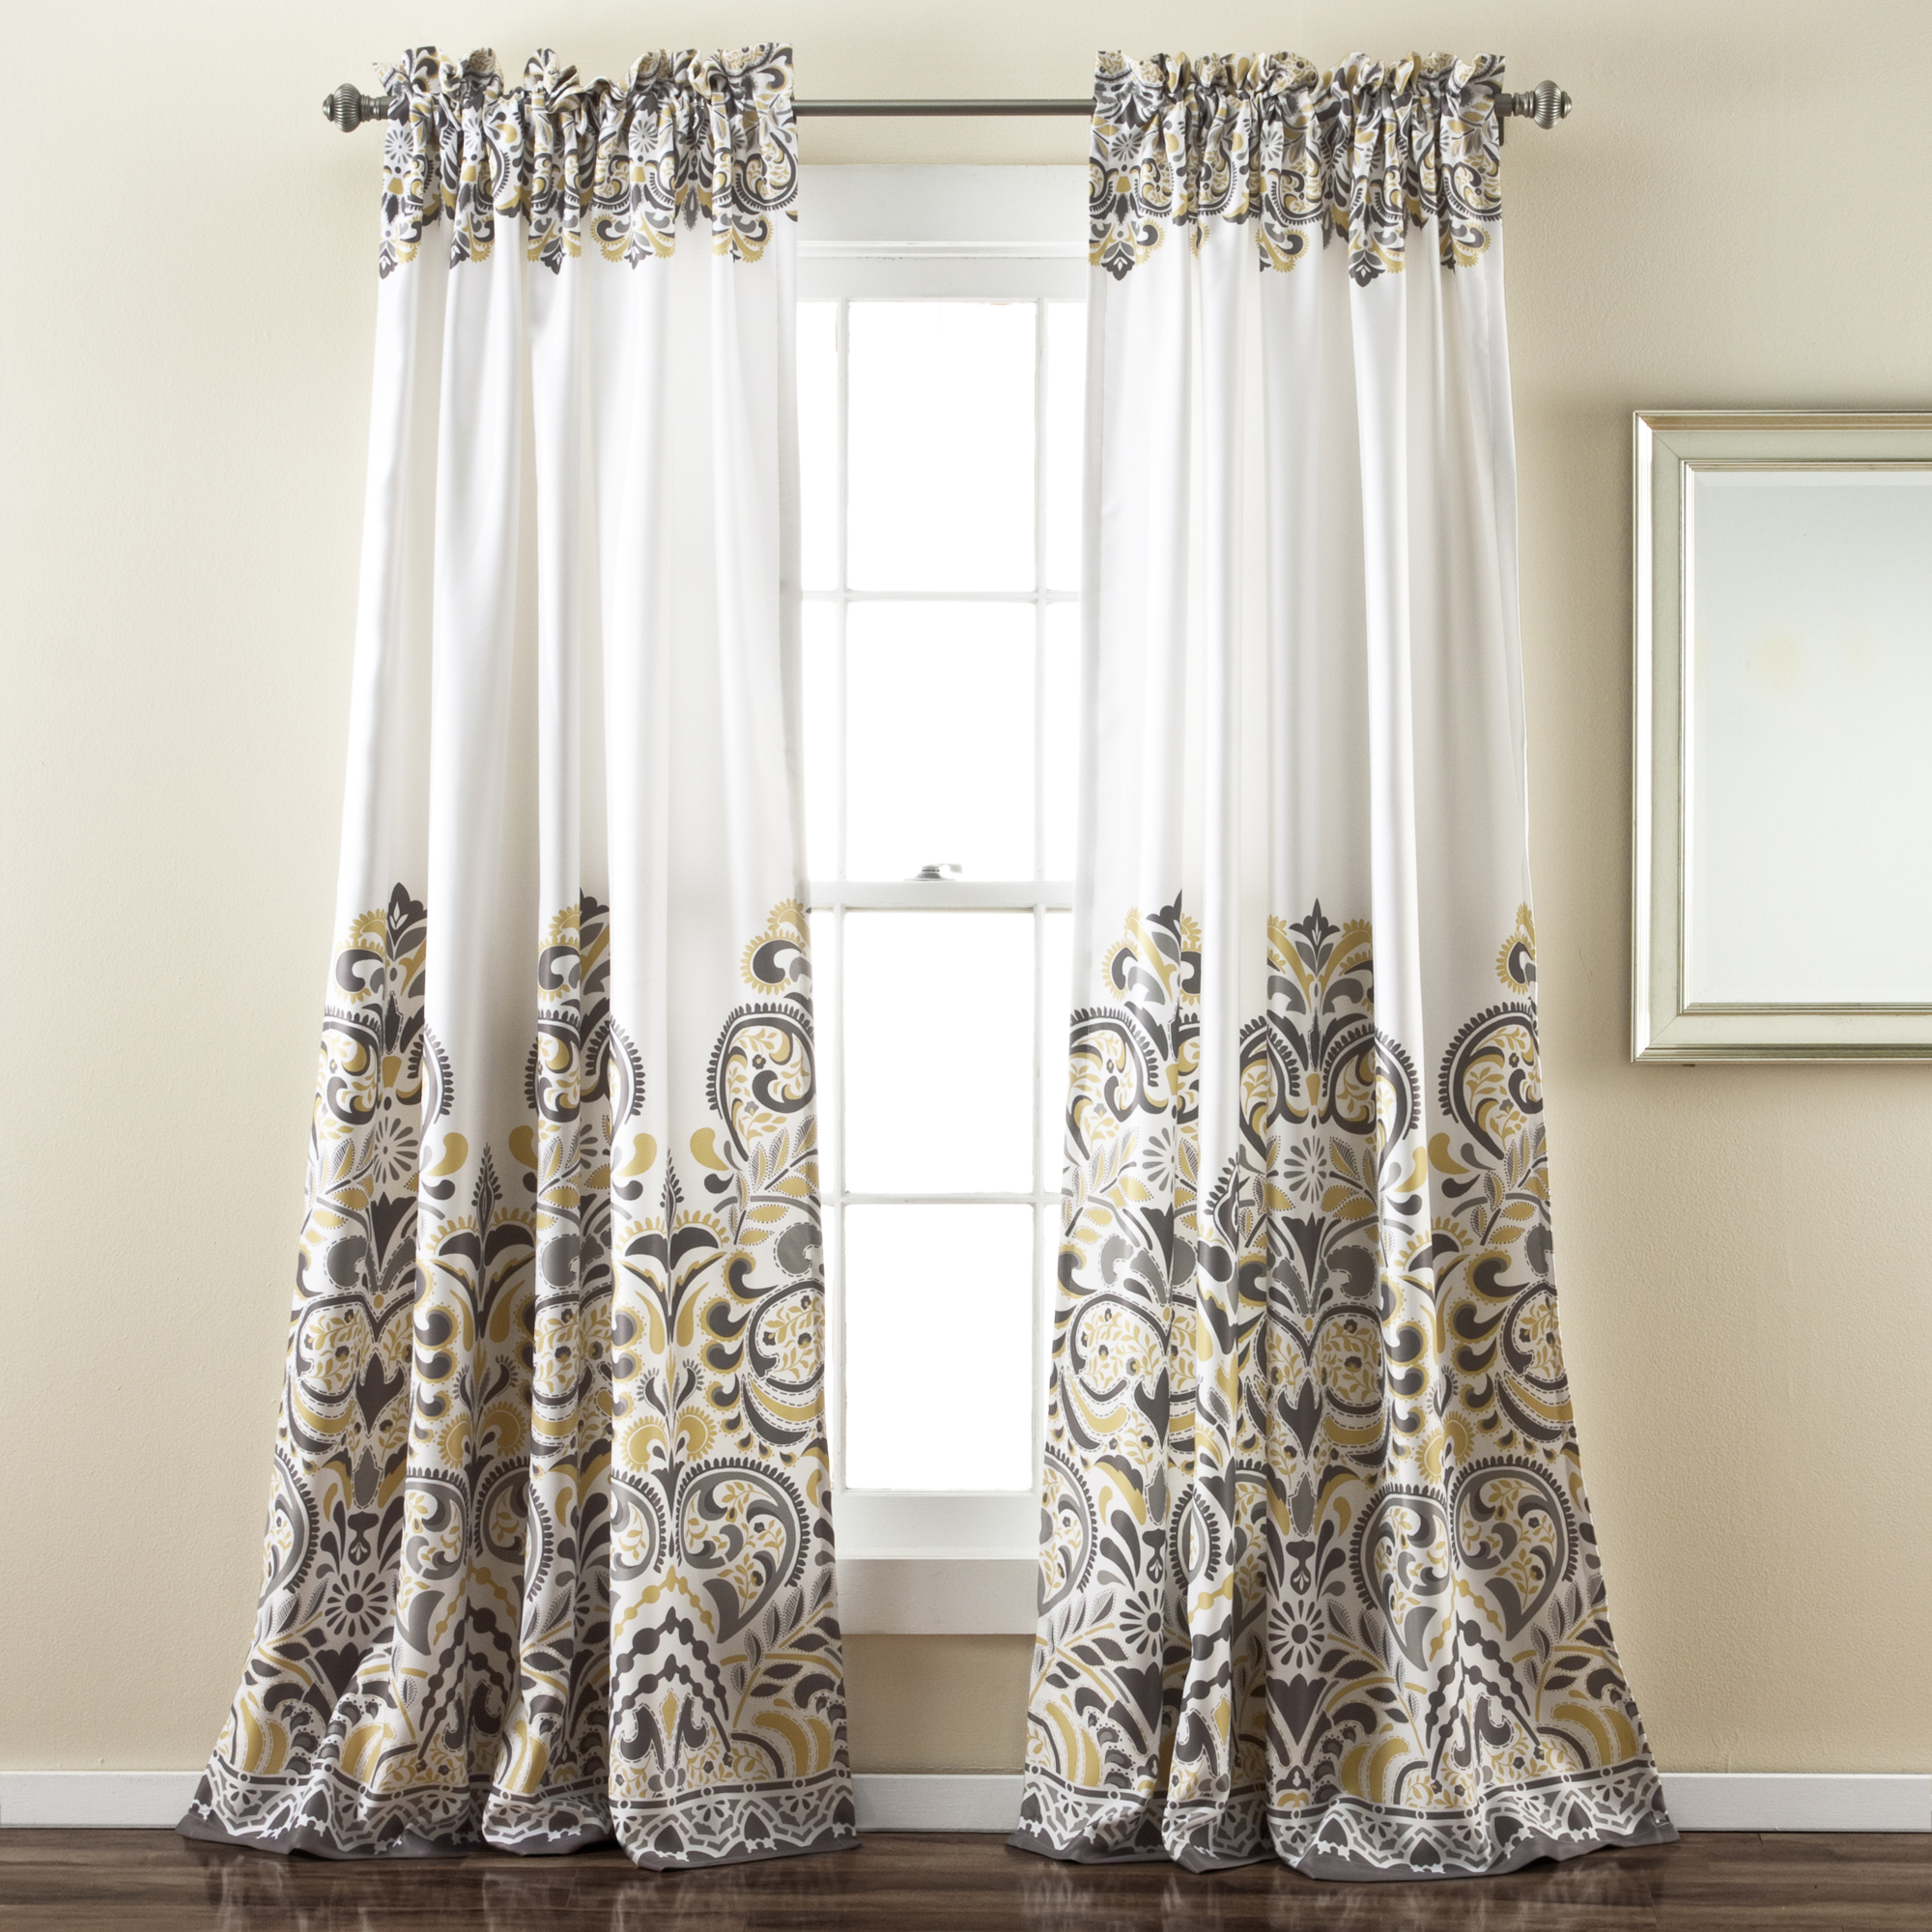 Weeping Flowers Room Darkening Curtain Panel Pairs Pertaining To Well Known Clara Room Darkening Window Panel Gray/ Yellow Set 52x84+ (View 16 of 20)